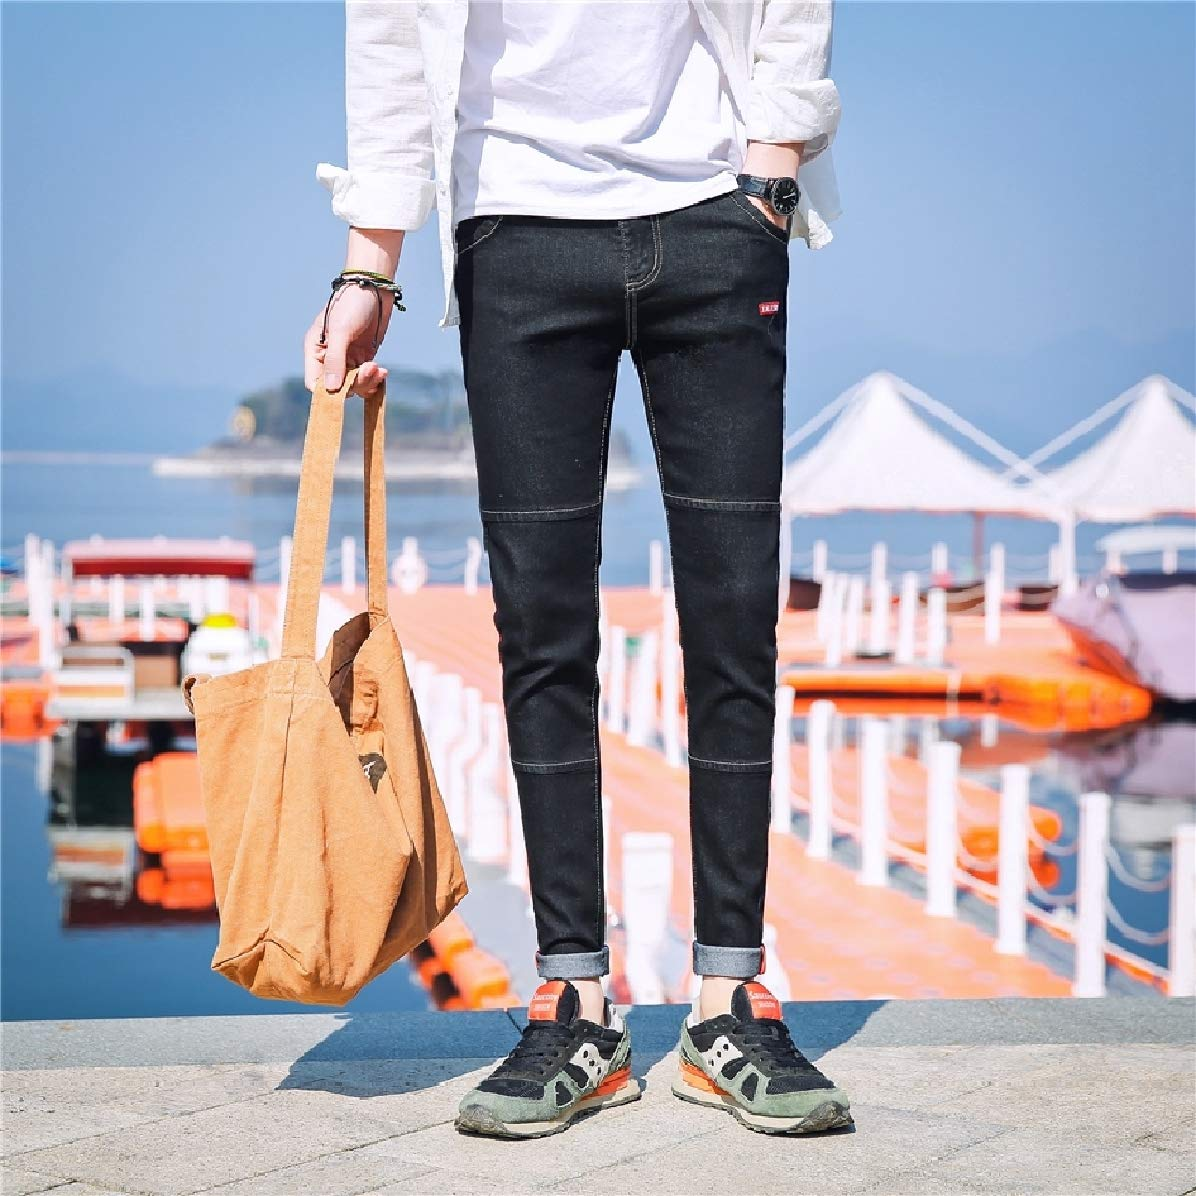 Comaba Mens Juniors Patched Denim Pants Trousers Slim Fitting Jeans